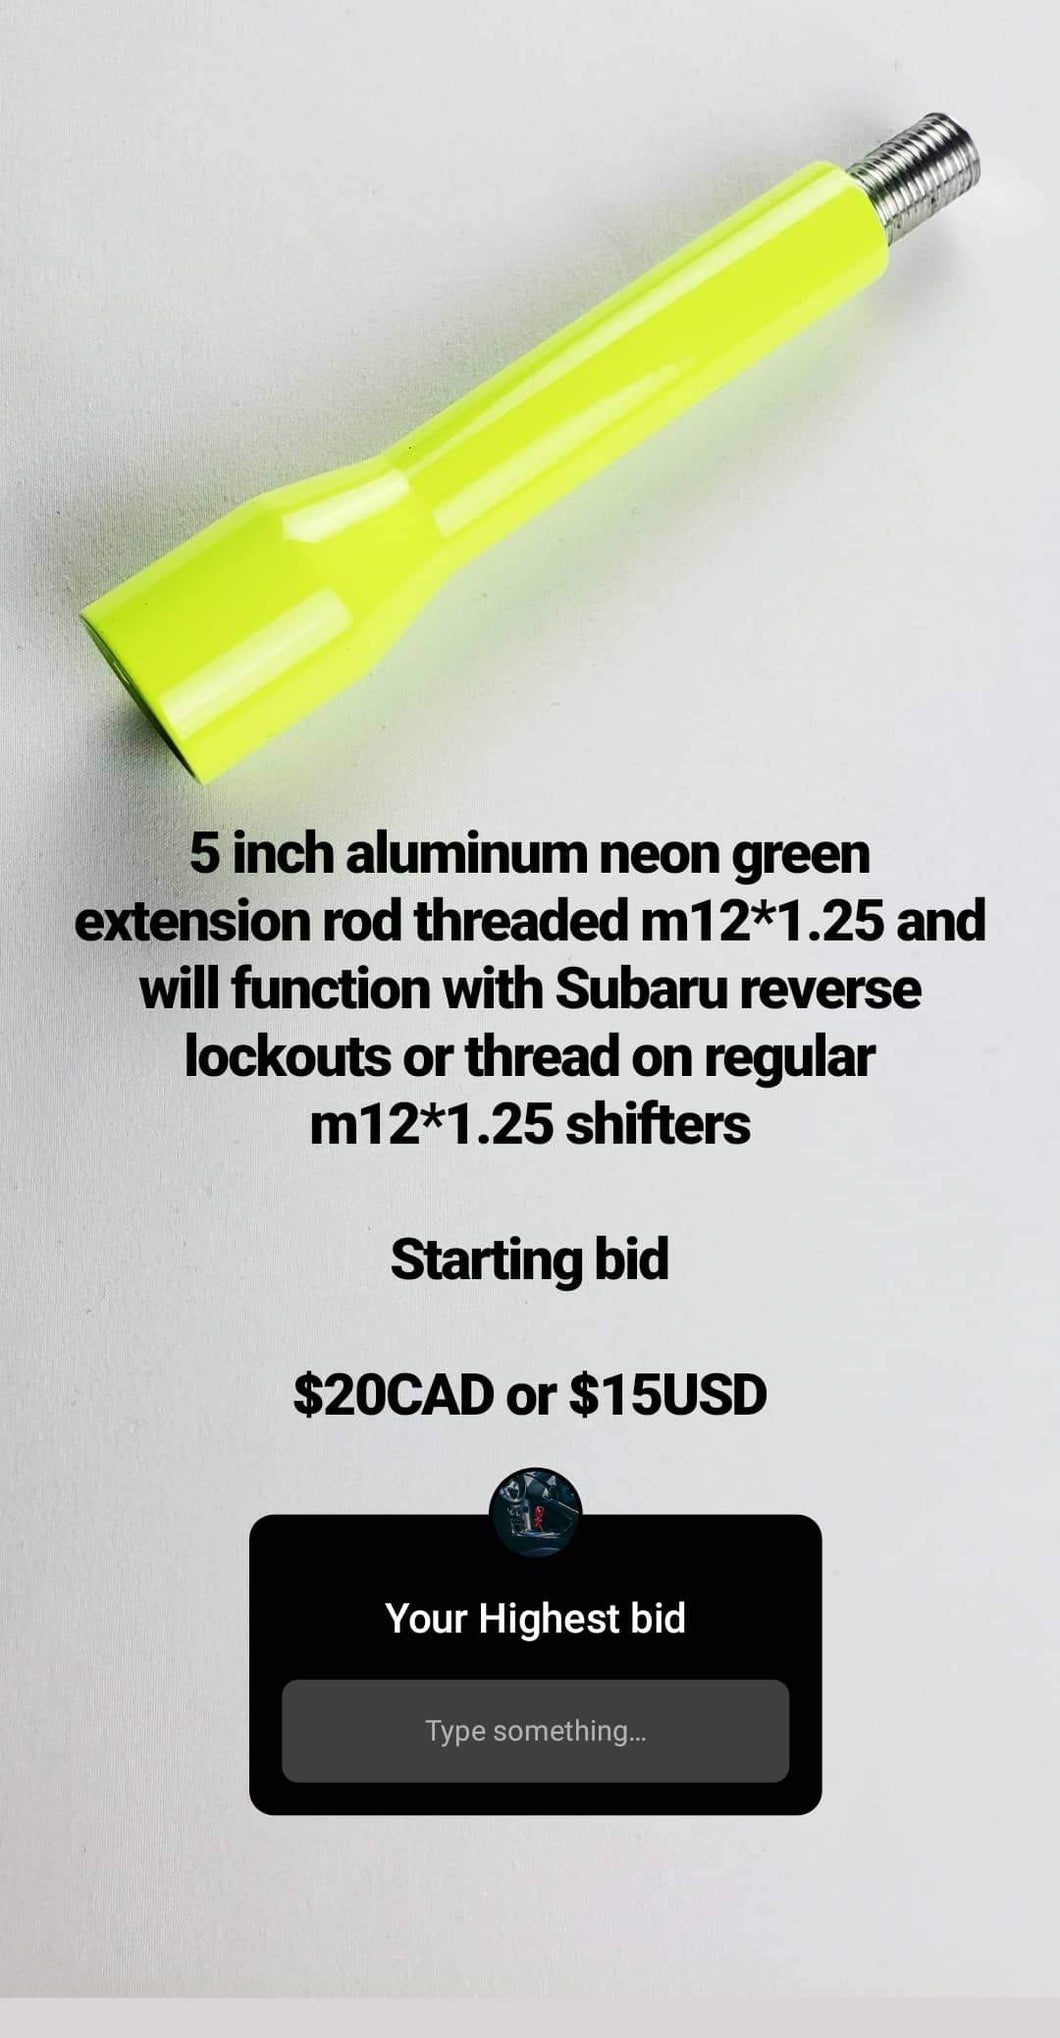 Neon green 5 inch extension